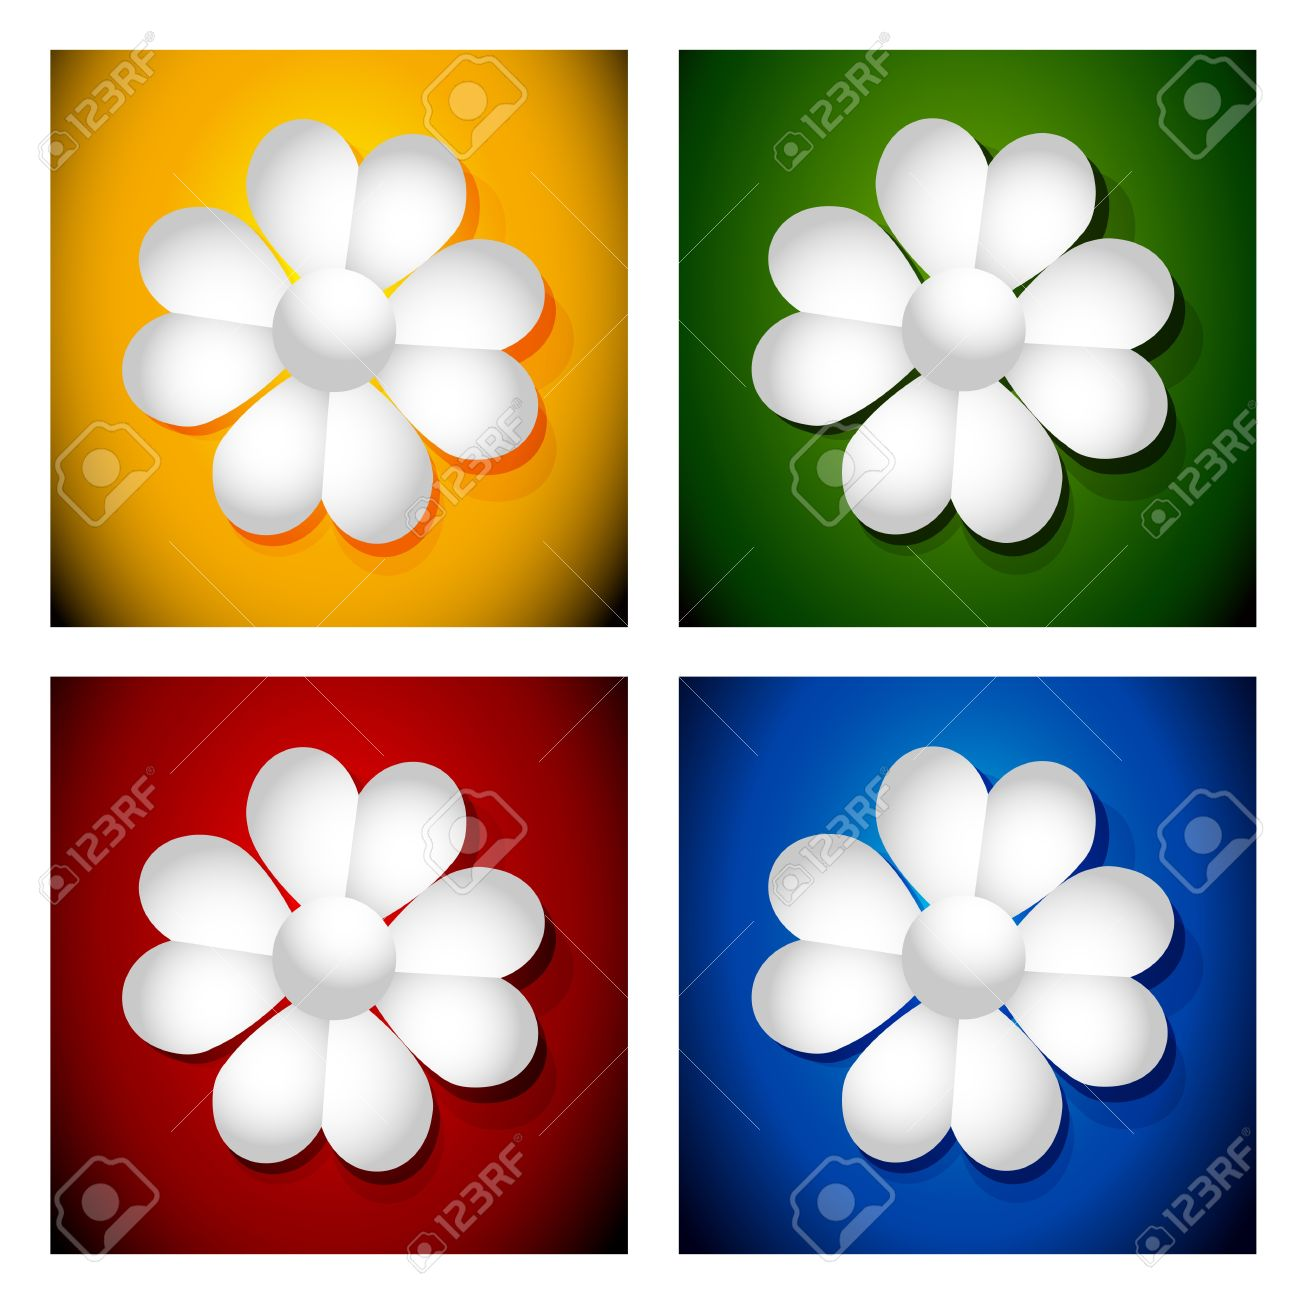 Paper Daisies Royalty Free Cliparts, Vectors, And Stock.